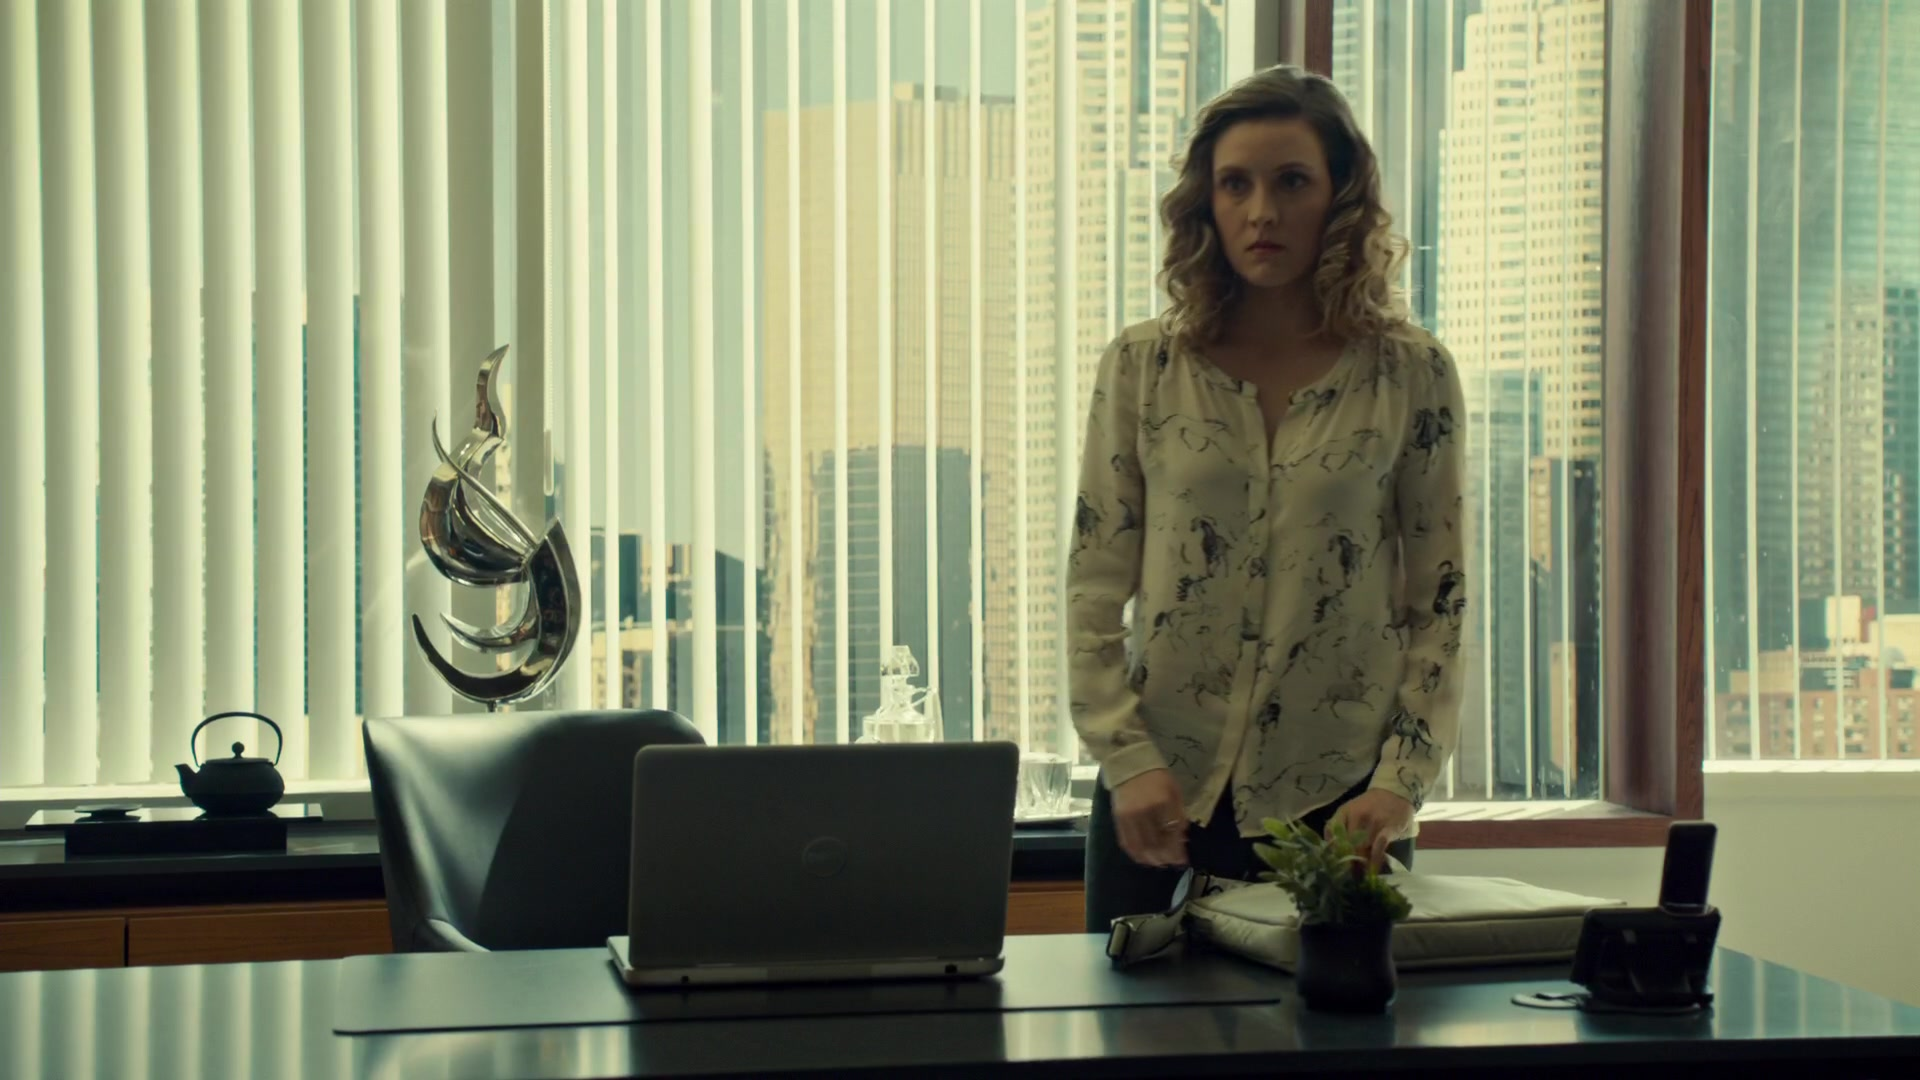 Orphan_Black_S02E09_Things_Which_Have_Never_Yet_Been_Done_1080p_WEB-DL_AAC2_0_H_264-ECI5Brarbg5D_1476.jpg